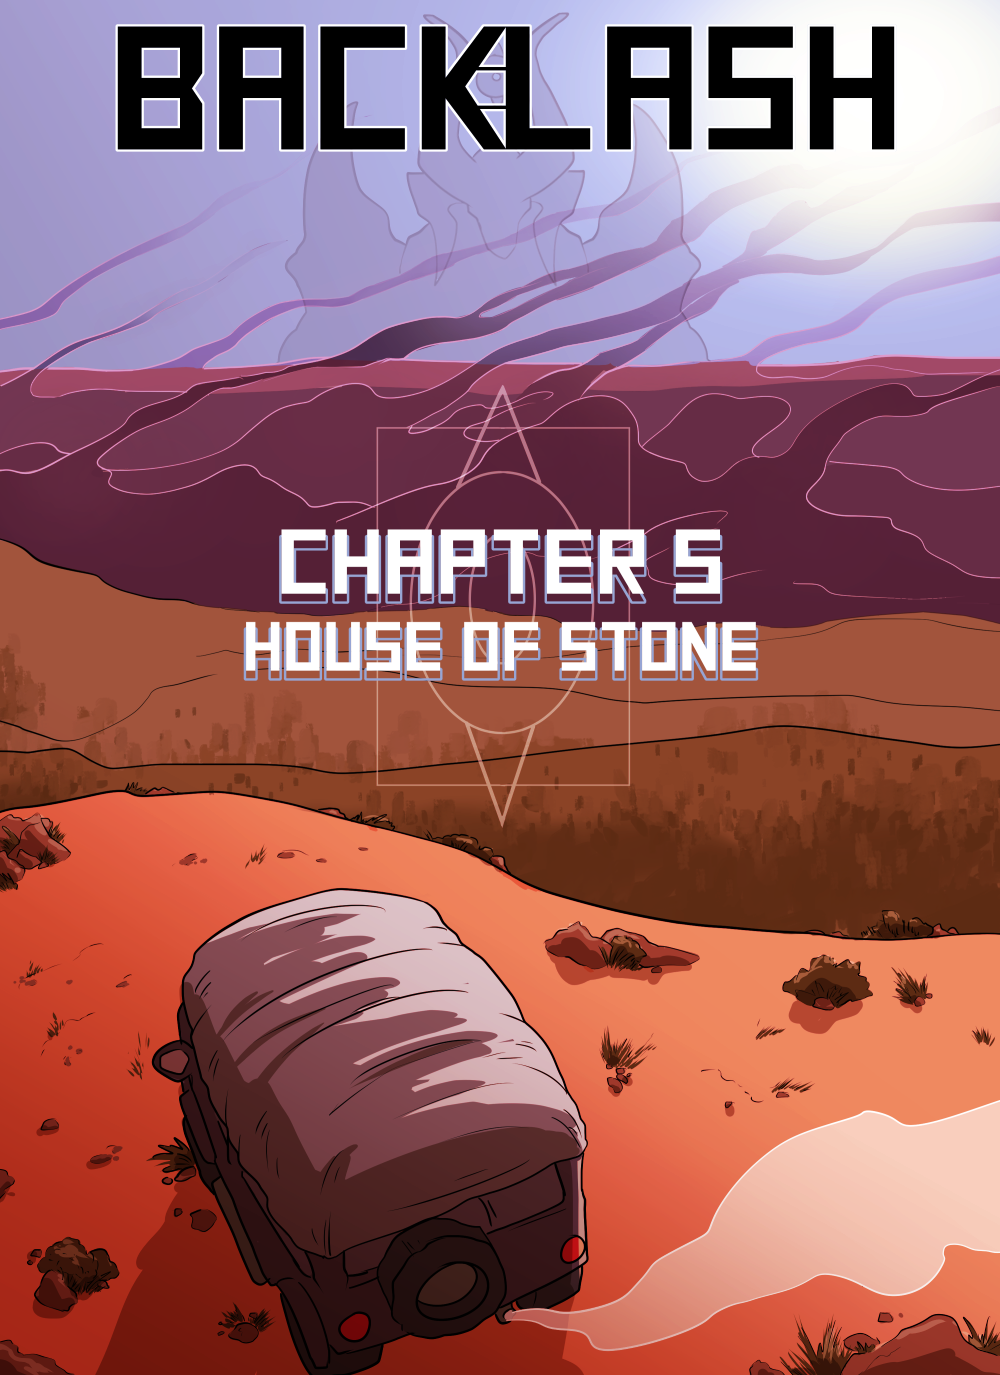 Betcha thought I forgot about the title page, huh?